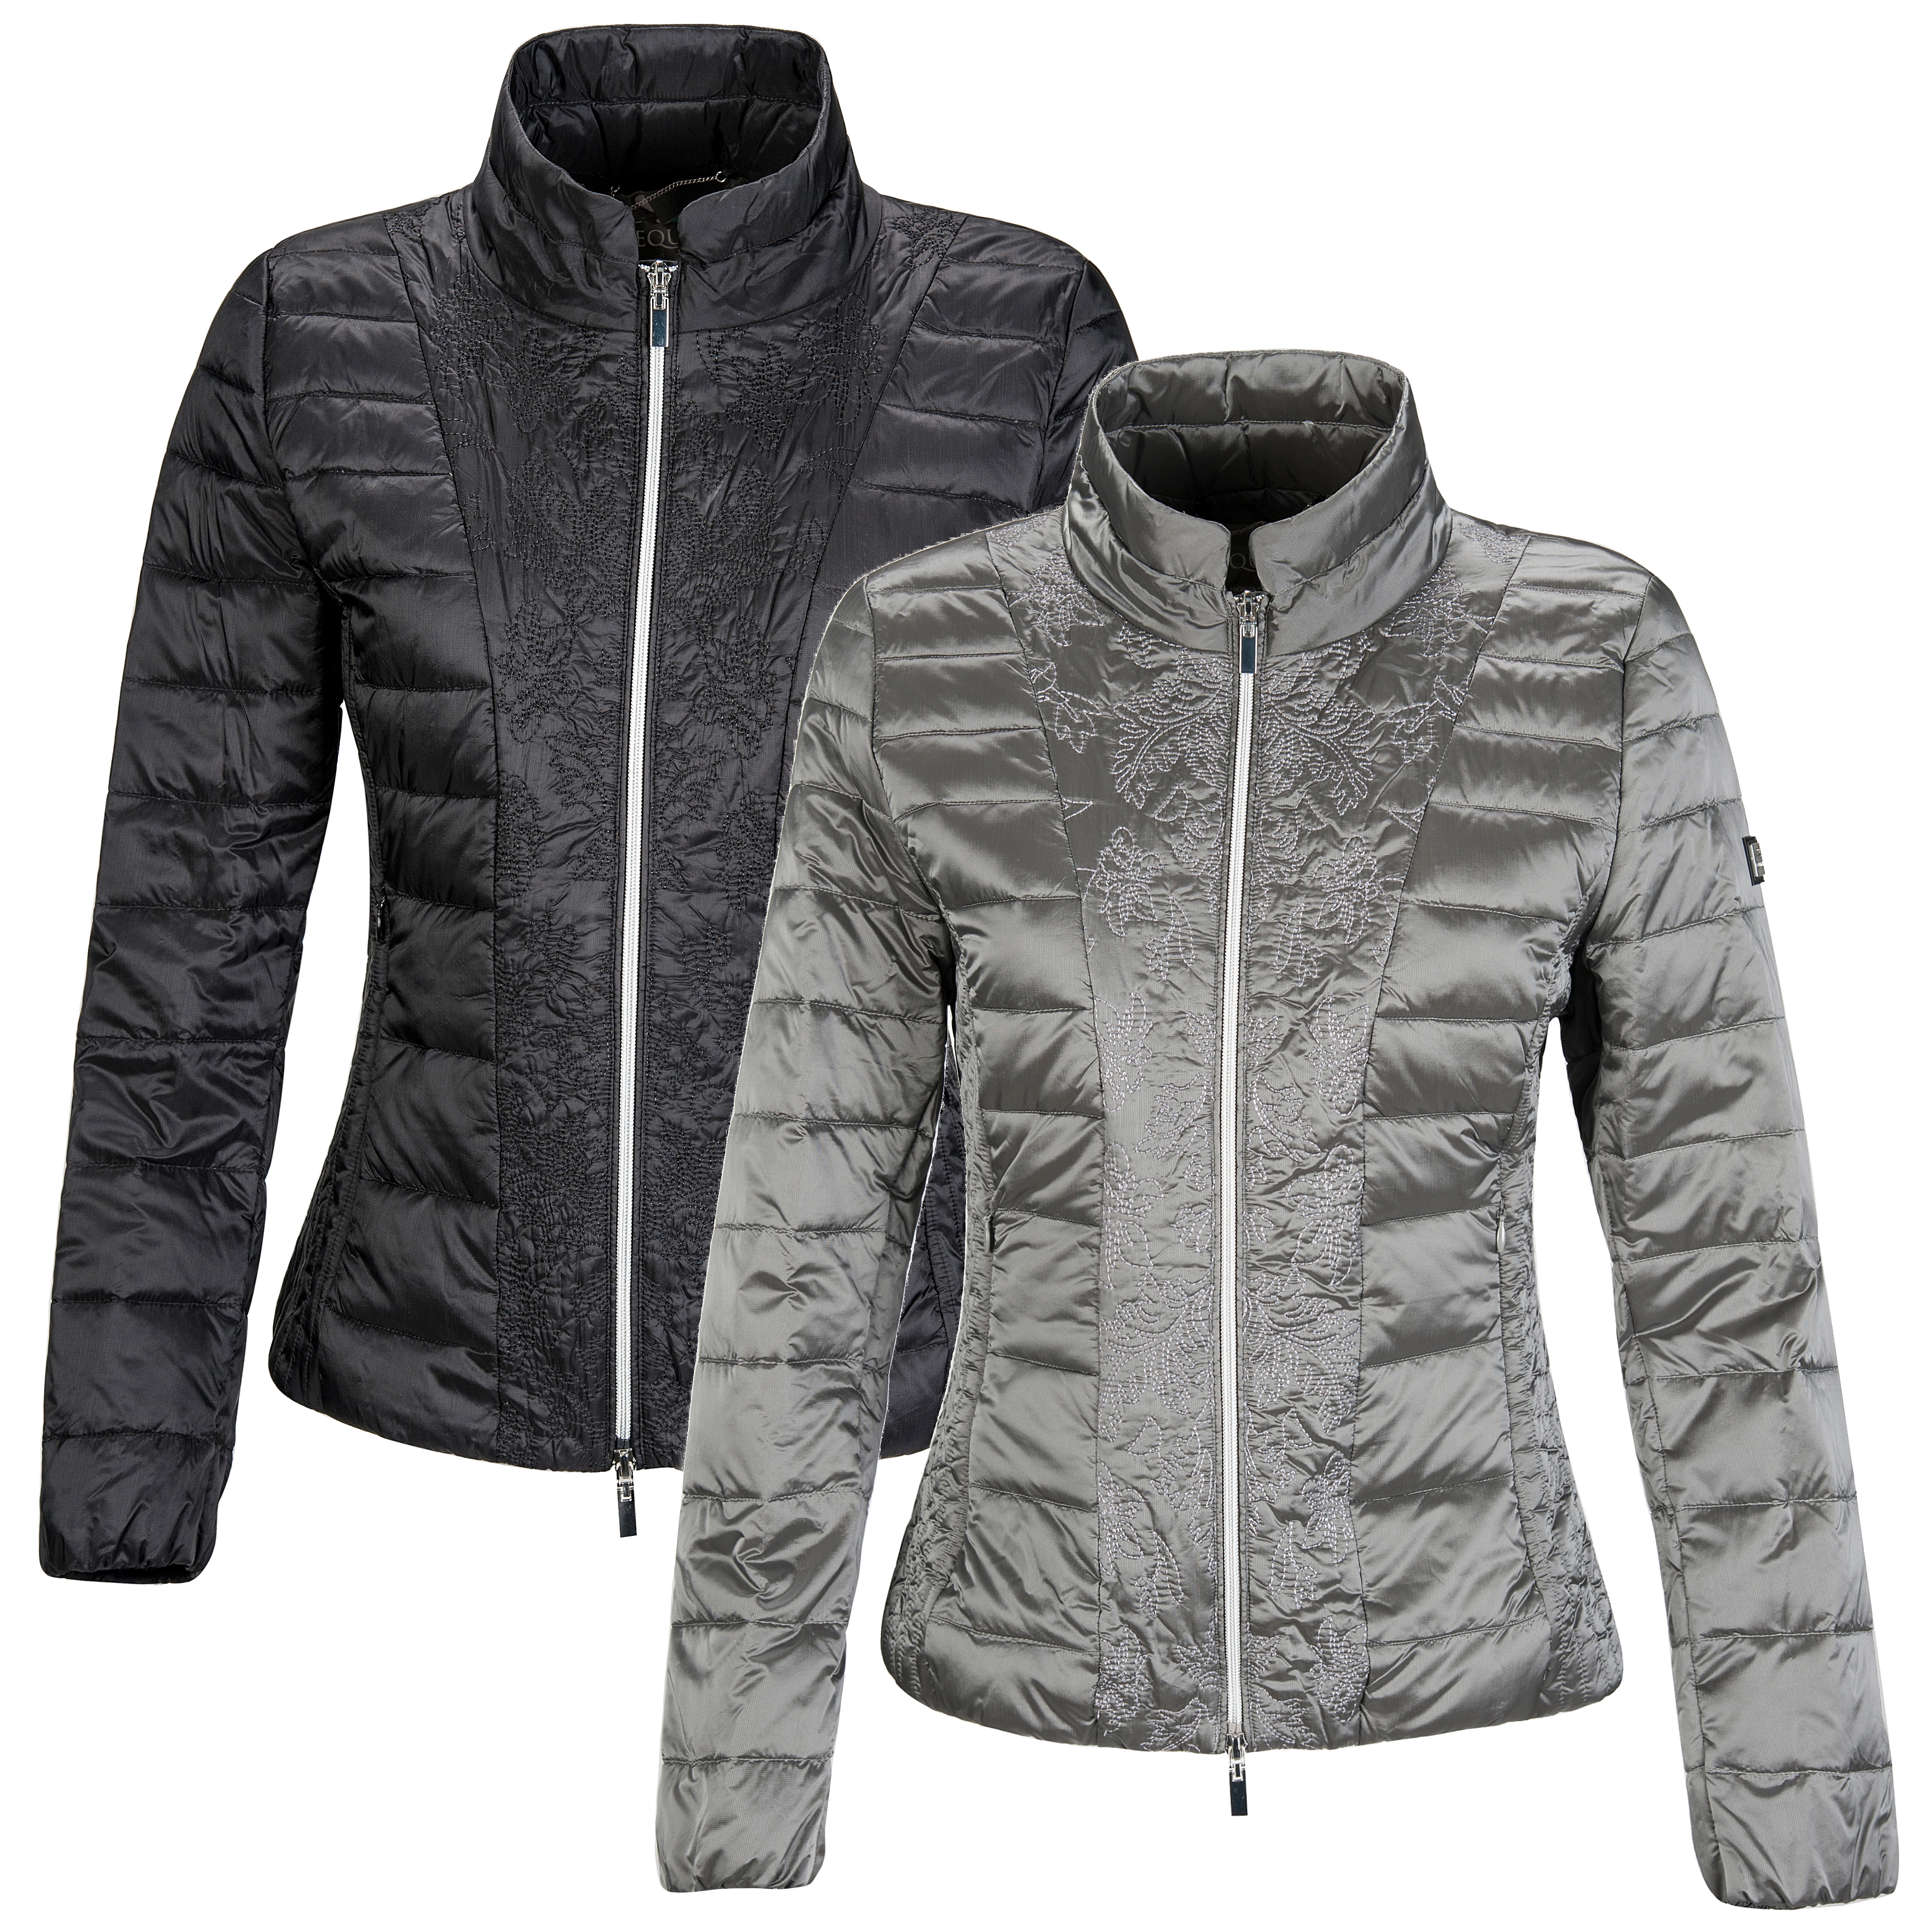 05229dcd7 Equiline Womens Down Jacket Parsifal